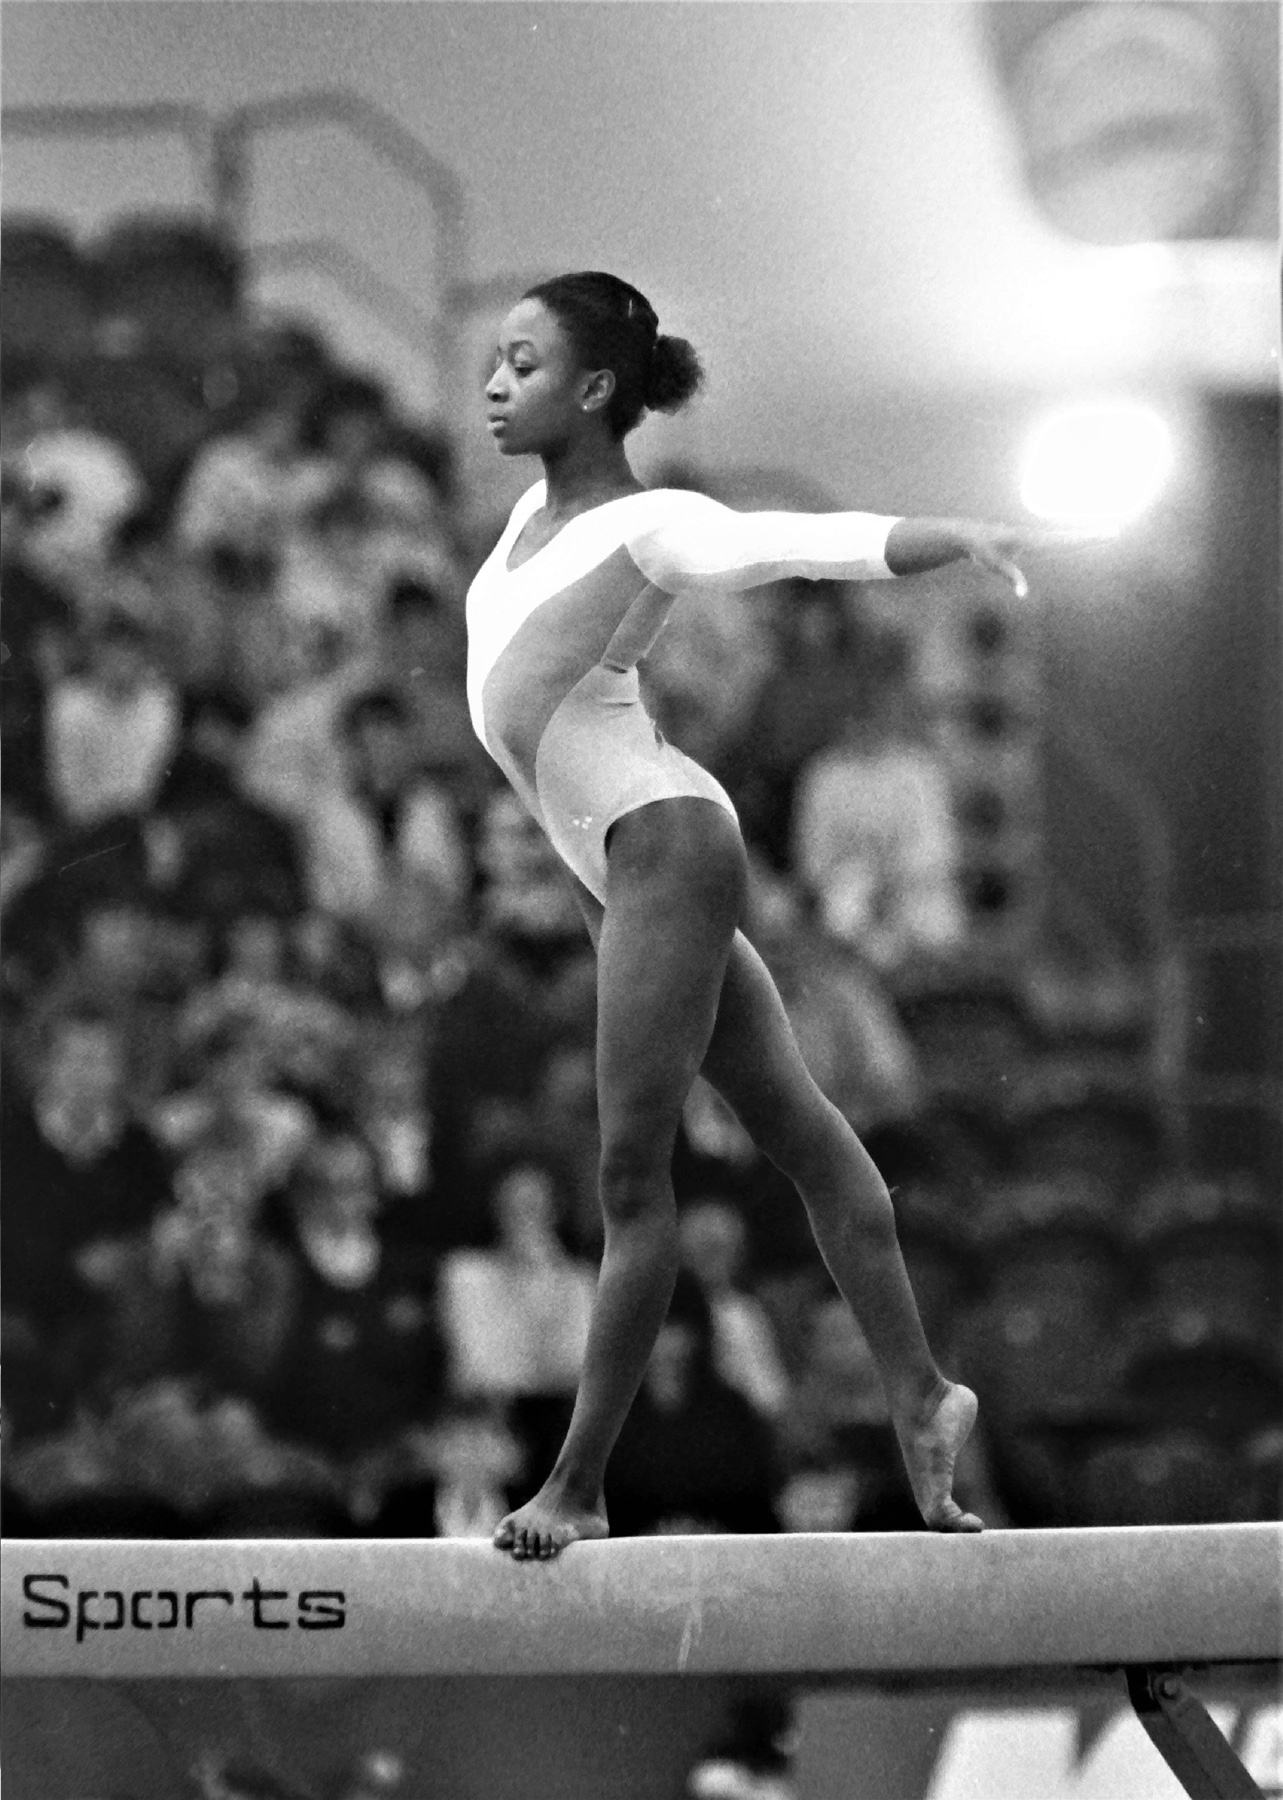 Kathy Williams competing on Beam at Alexandra Palace, London - photo by Alan Burrows